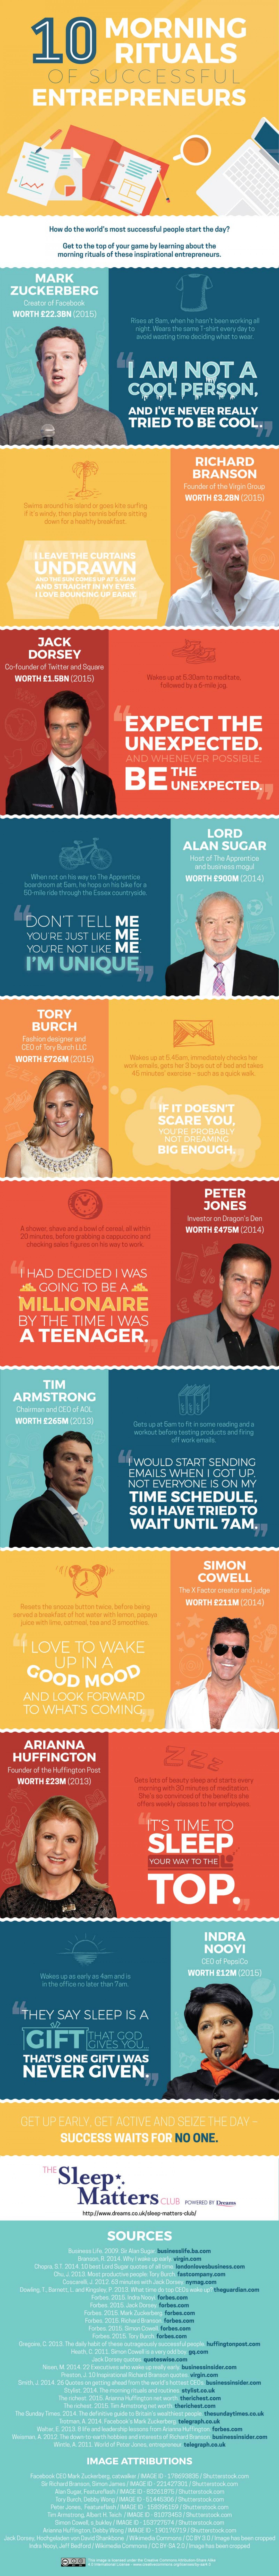 10 Morning Rituals of Successful Entrepreneurs Infographic